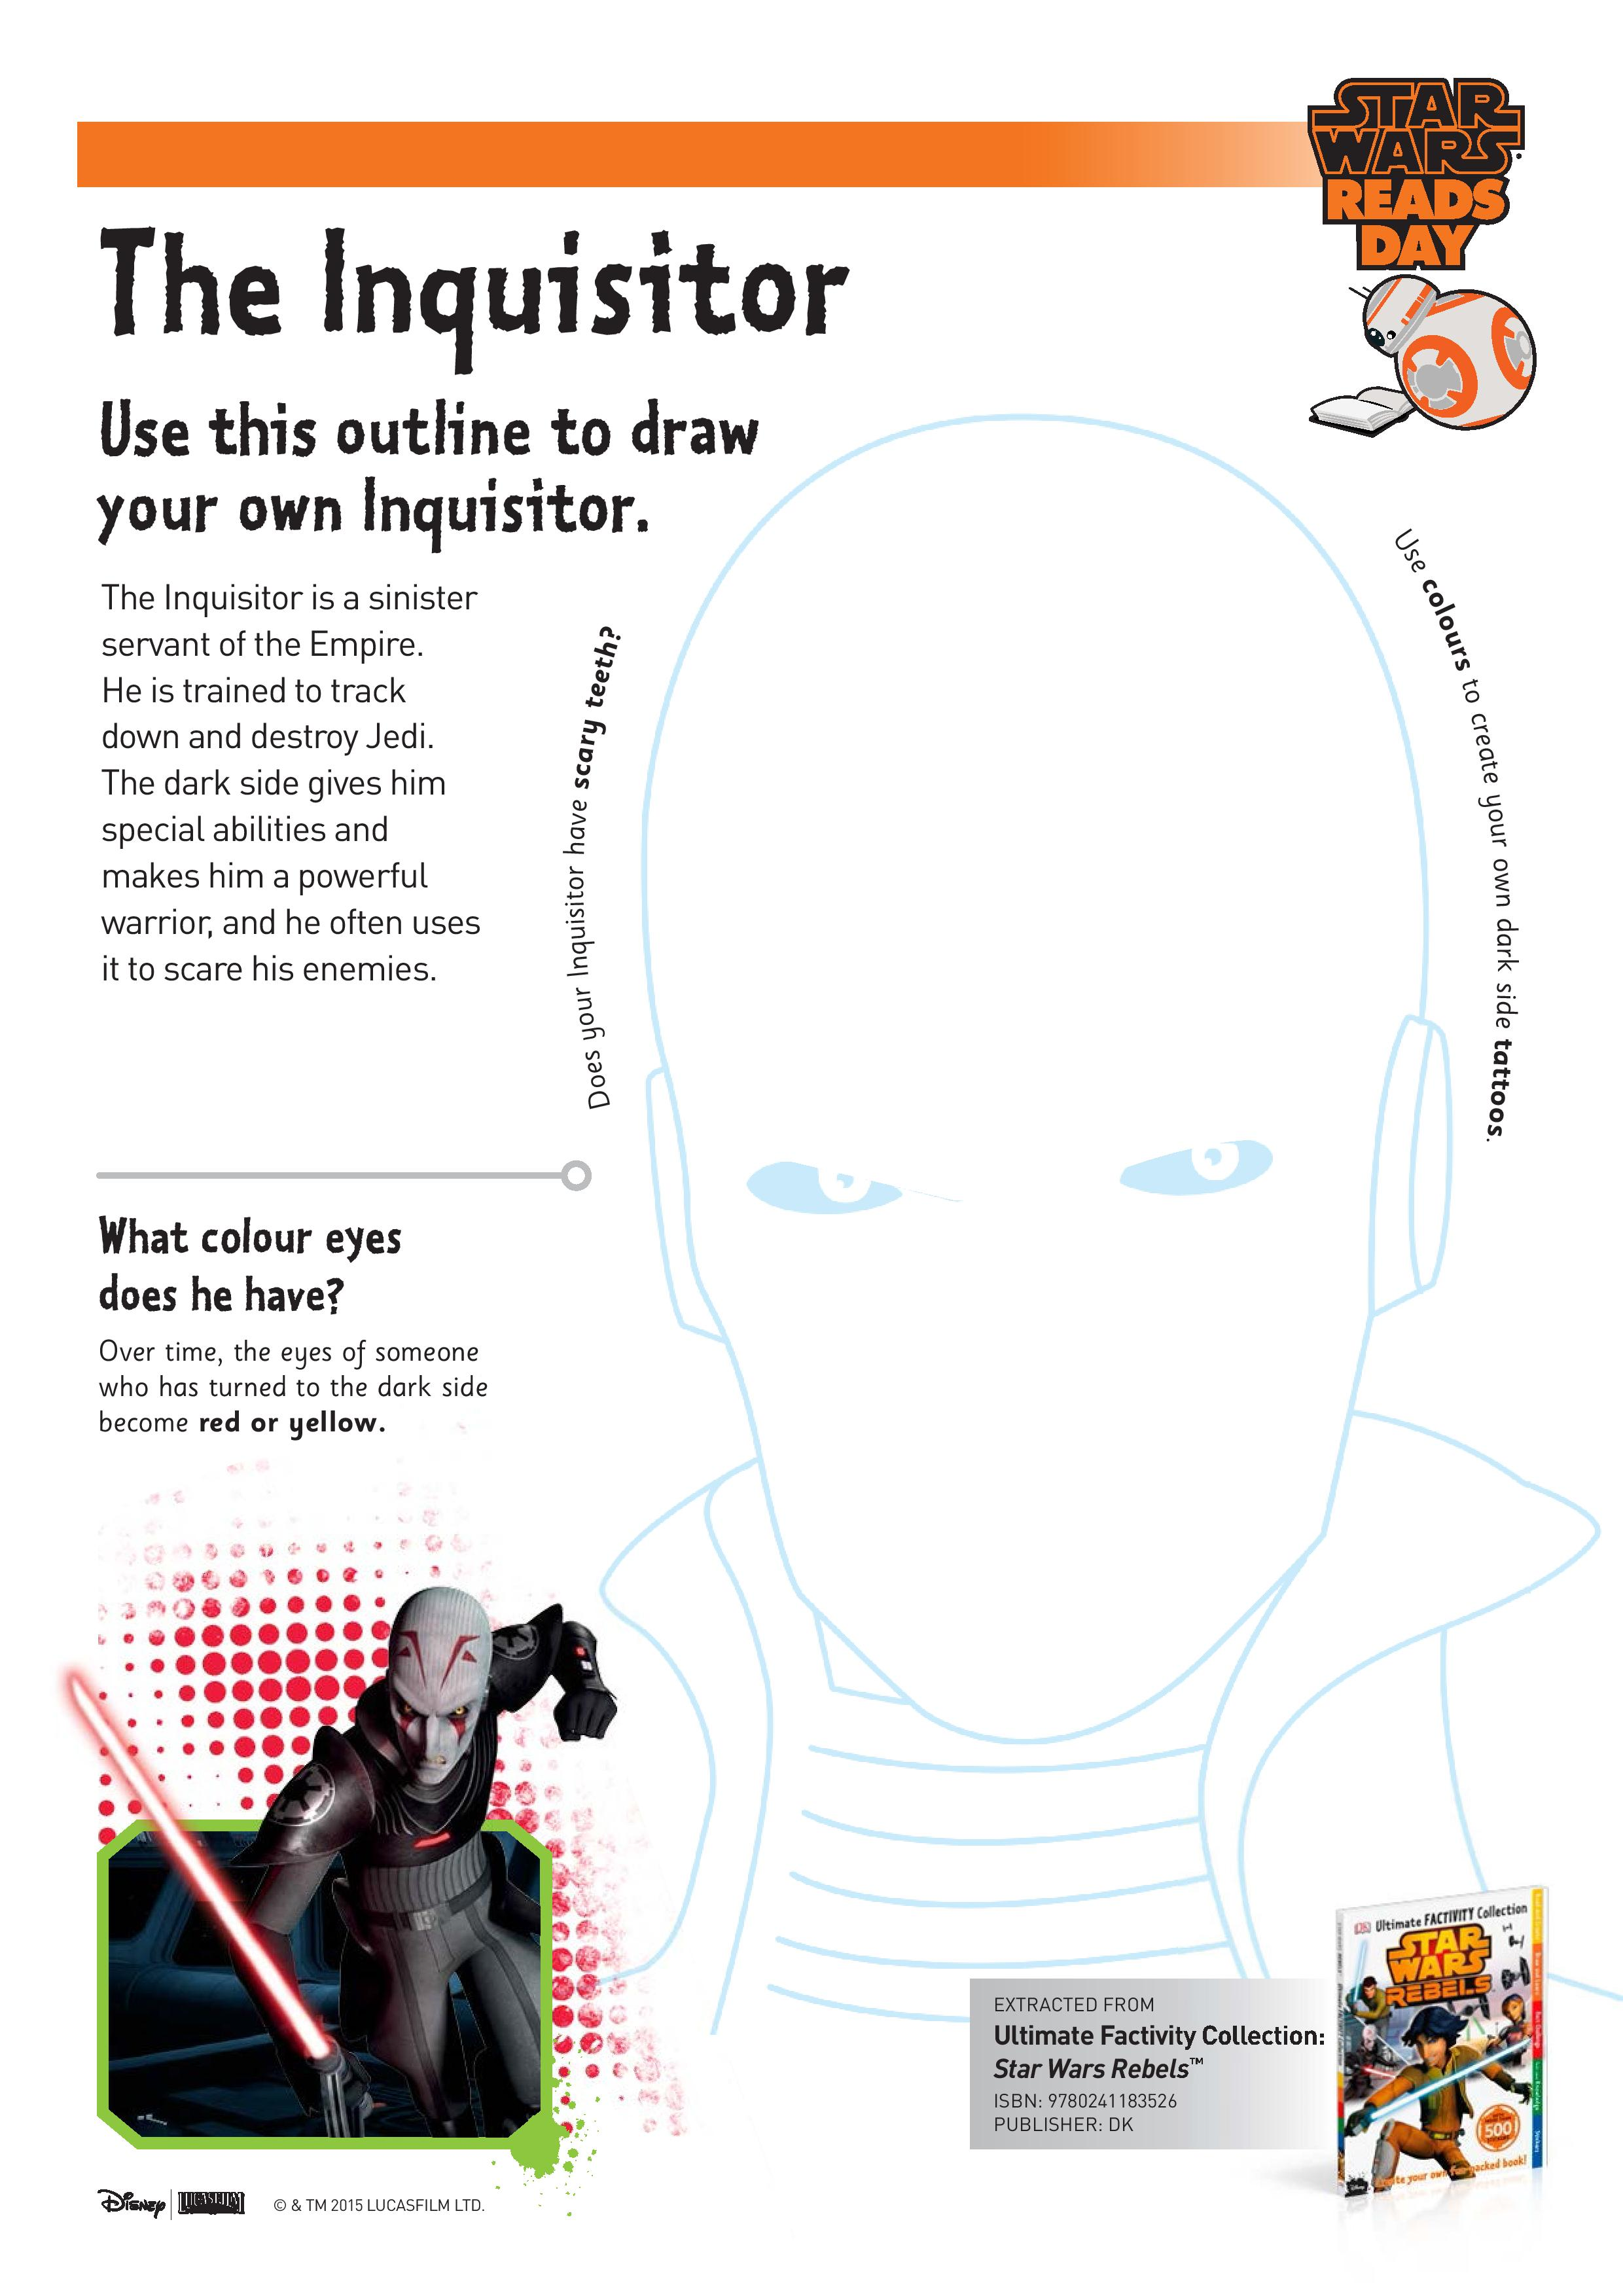 star-wars-reads-day-2015-activity-sheets-page-002